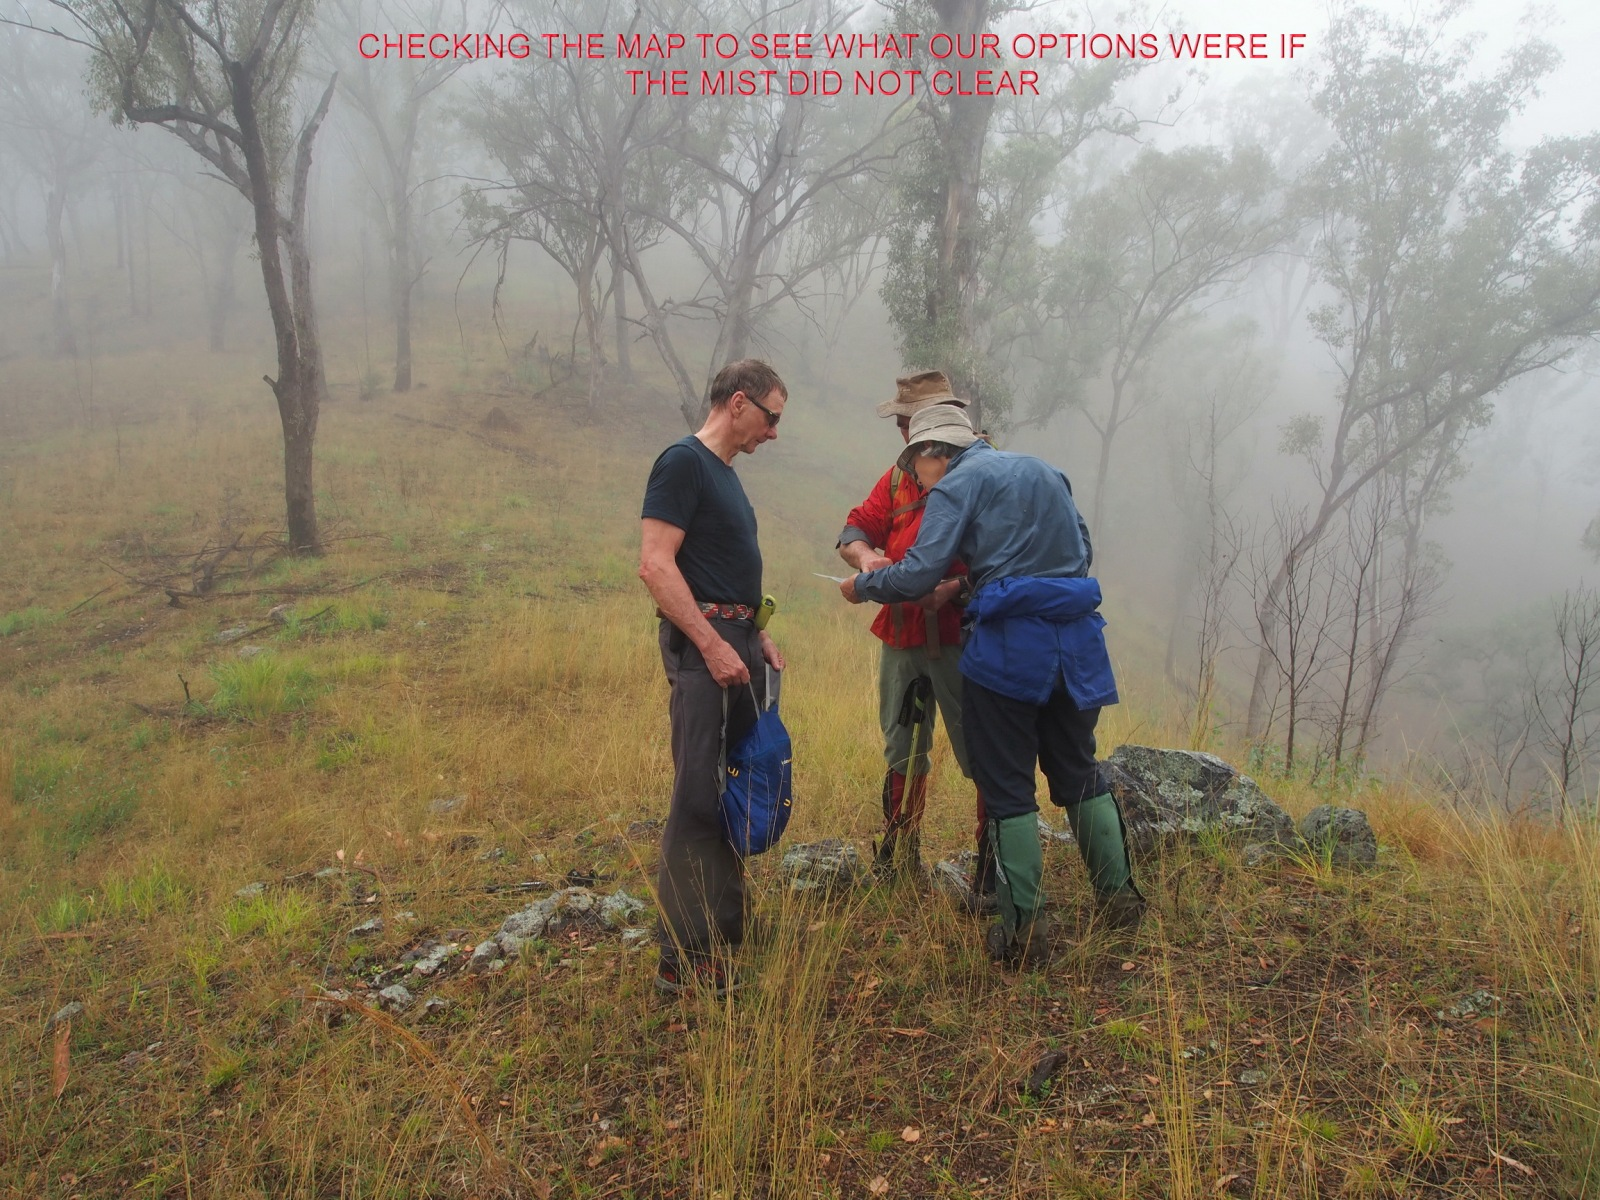 CHECKING THE MAP TO SEE WHAT OUR OPTIONS WERE IF THE MIST DID NOT CLEAR